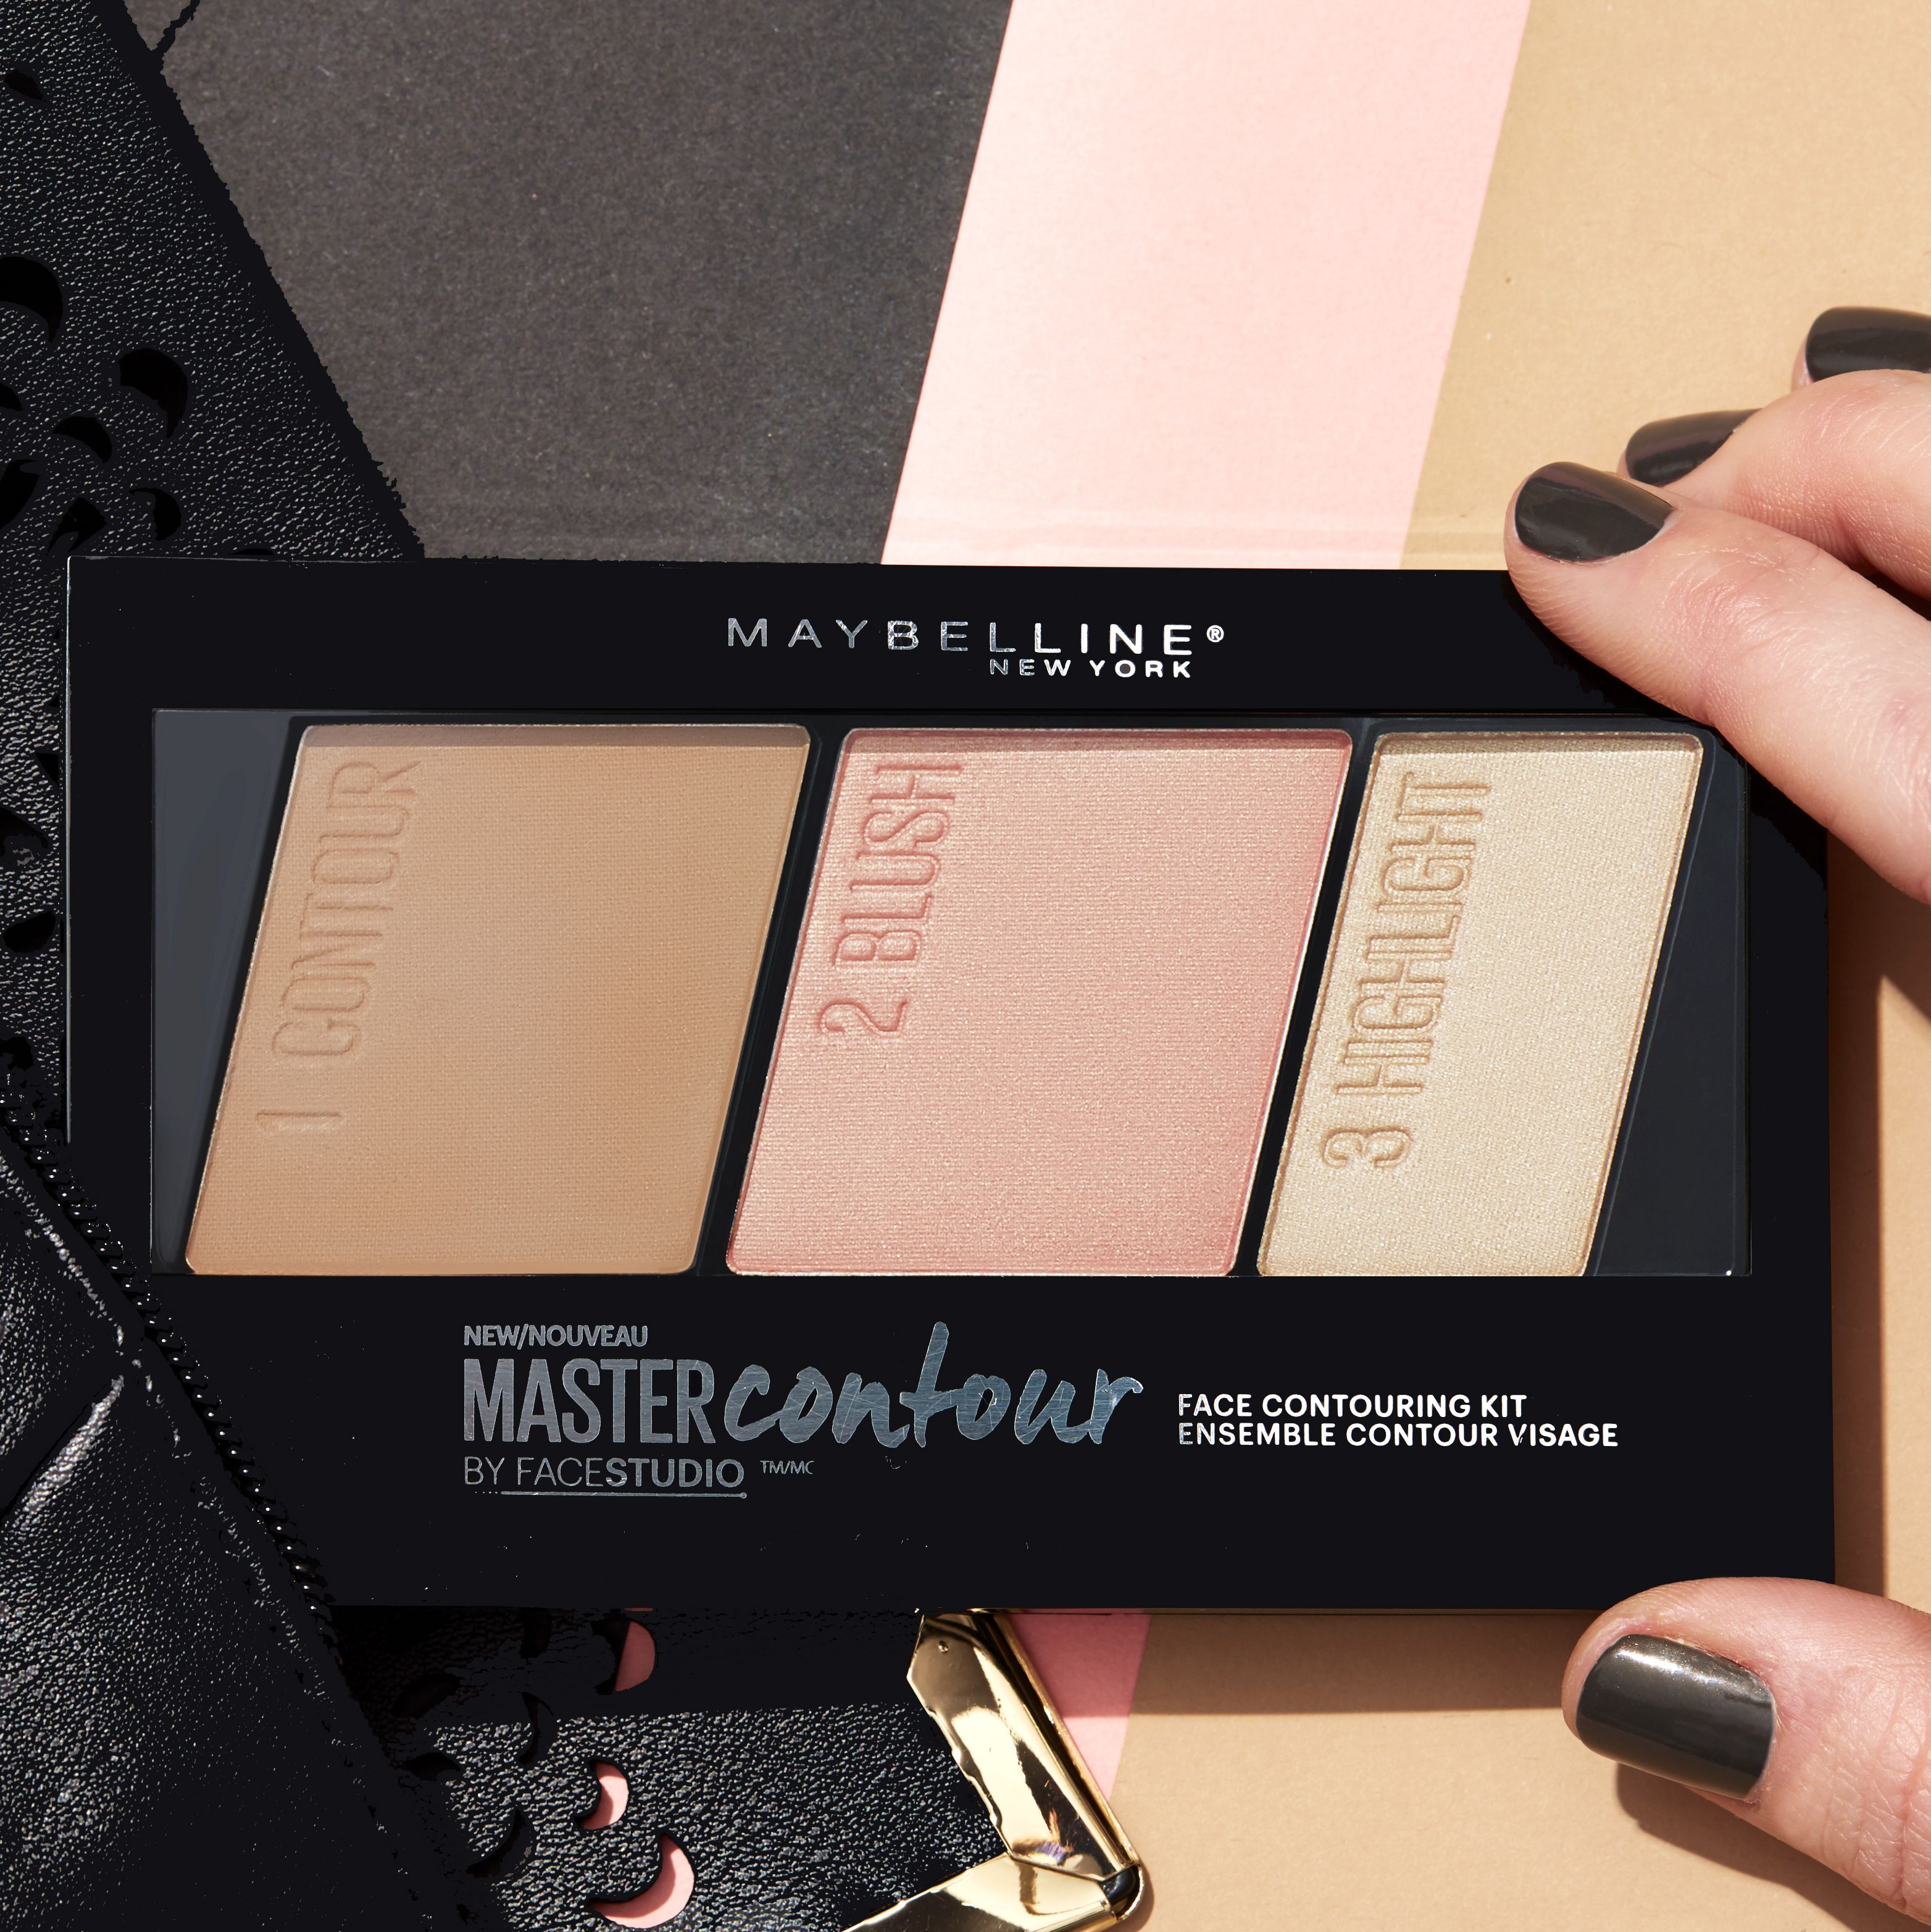 5a880cde6f7 The perfect on-the-go palette for a natural looking contour this spring. Maybelline  Master Contour palette contains all you need for a sculpted, ...